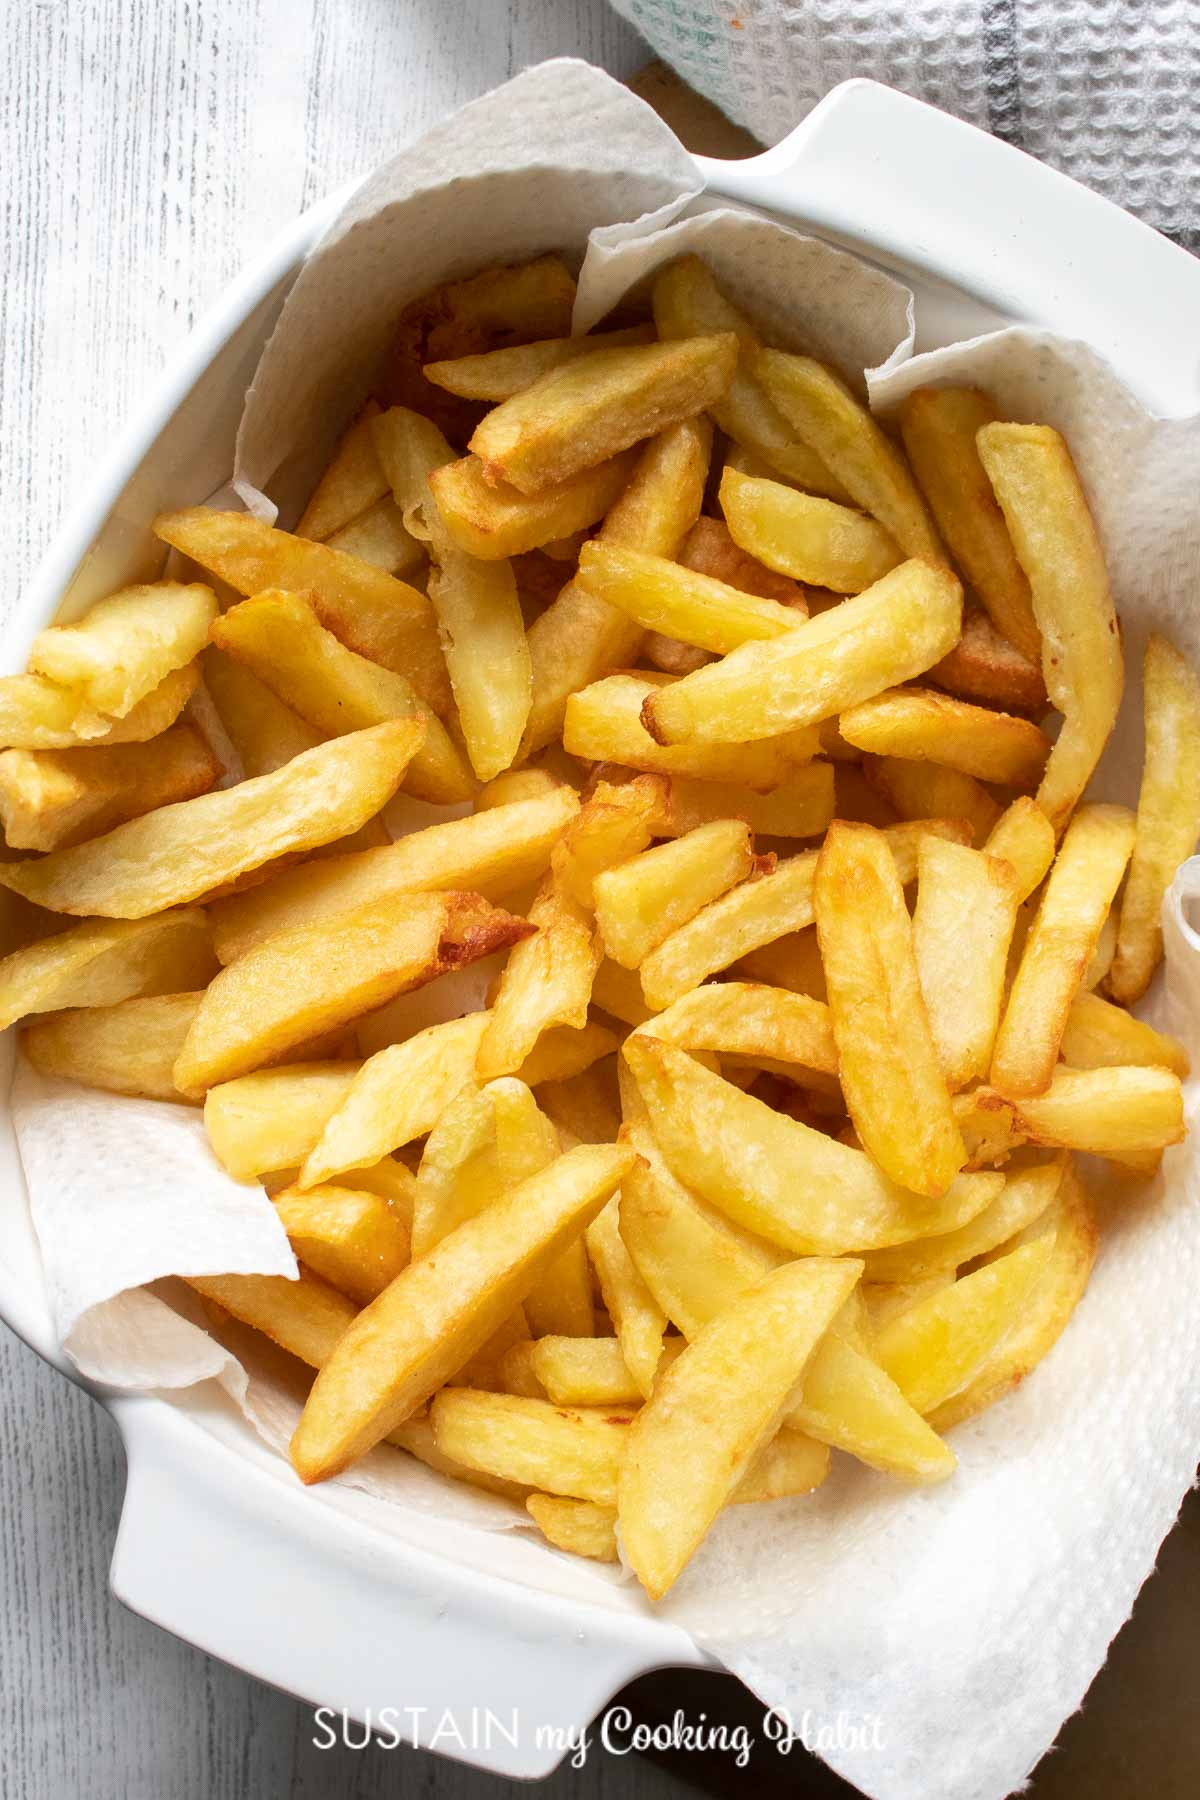 Homemade french fries in a pan.